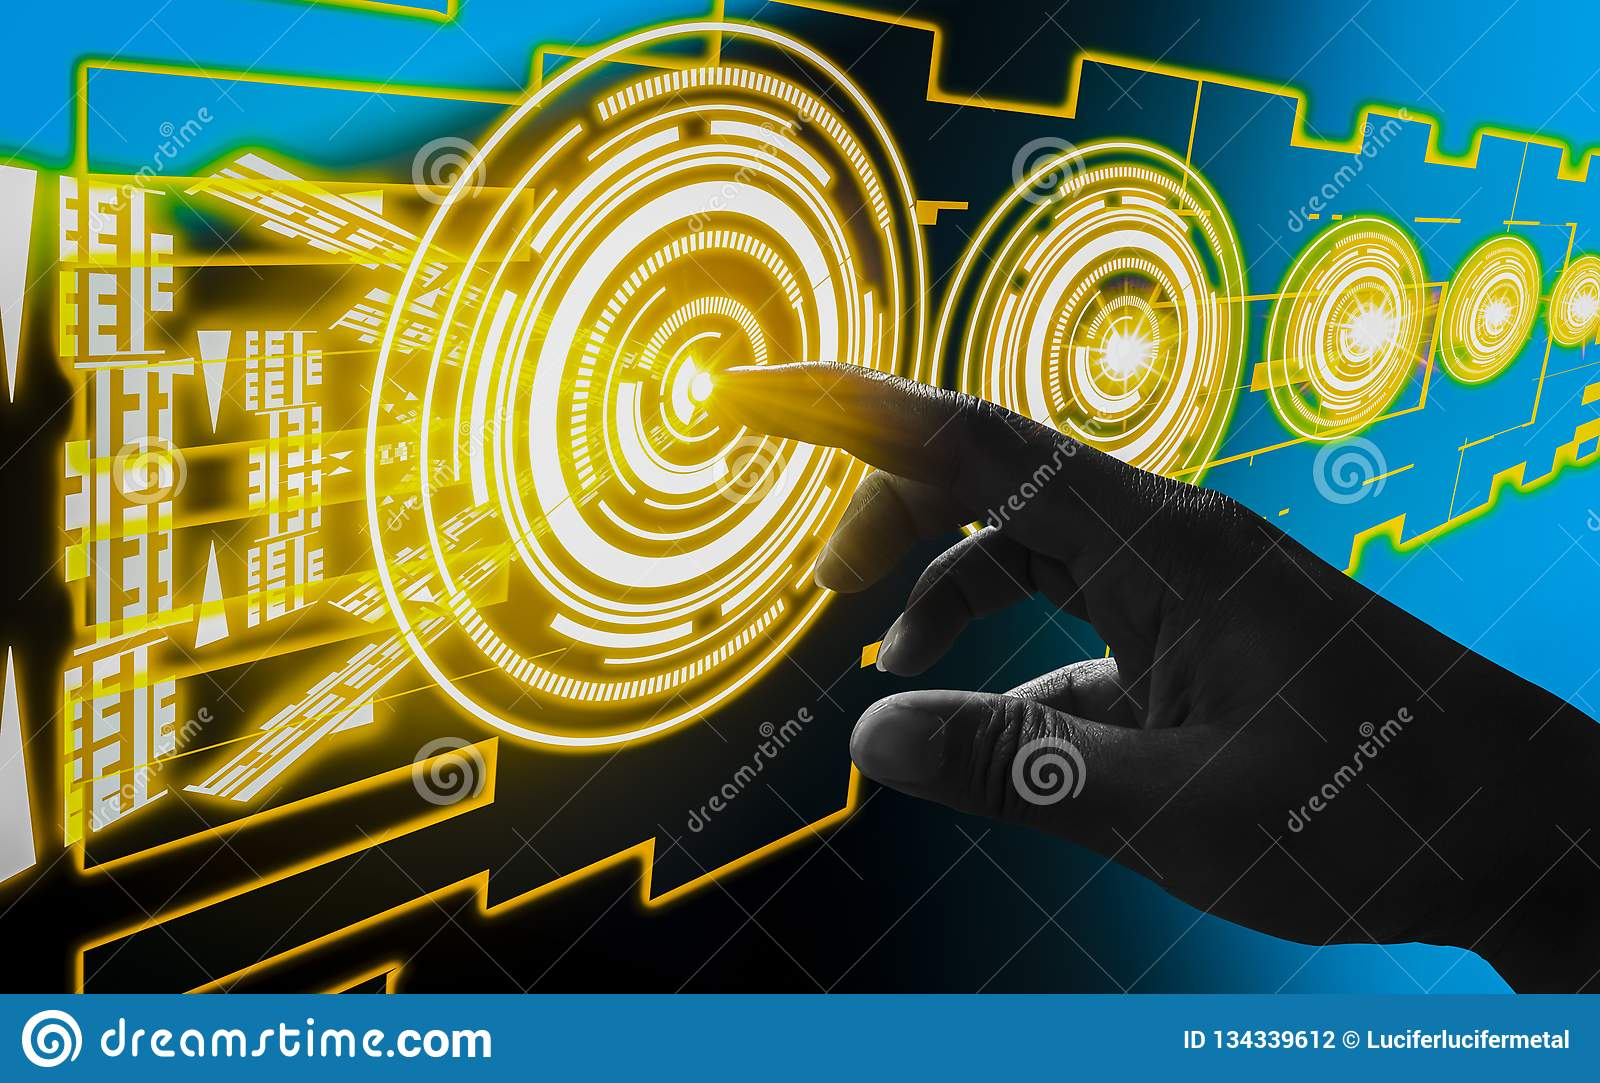 Finger touch interface abstract concepts, involving very modern futuristic technology and design,with innovative humanity,creating